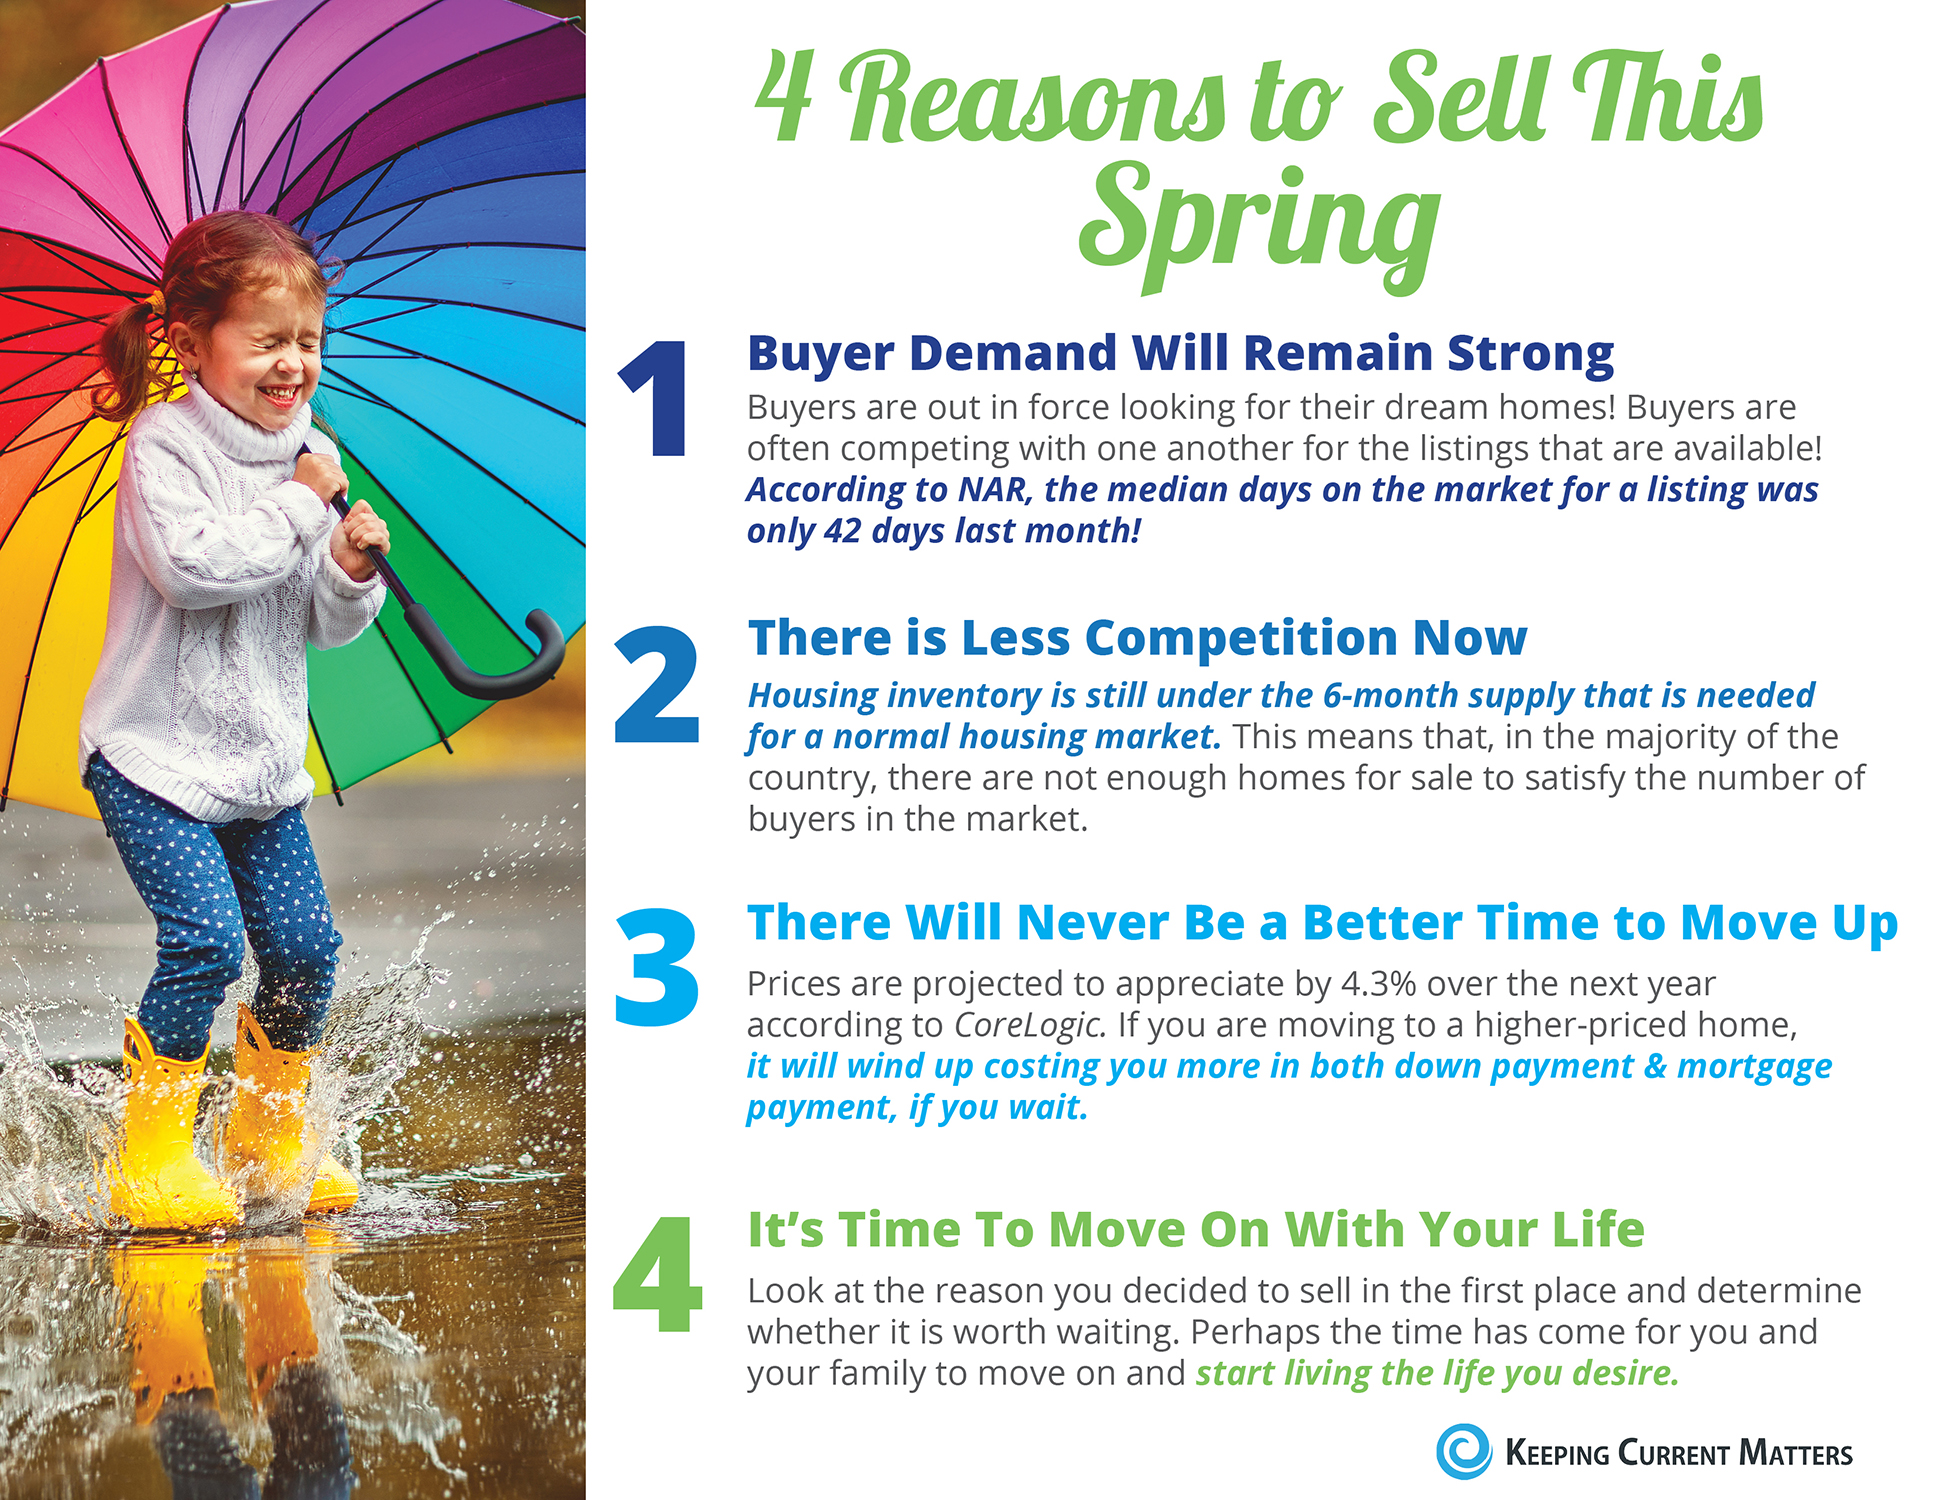 4 Reasons to Sell in the Spring